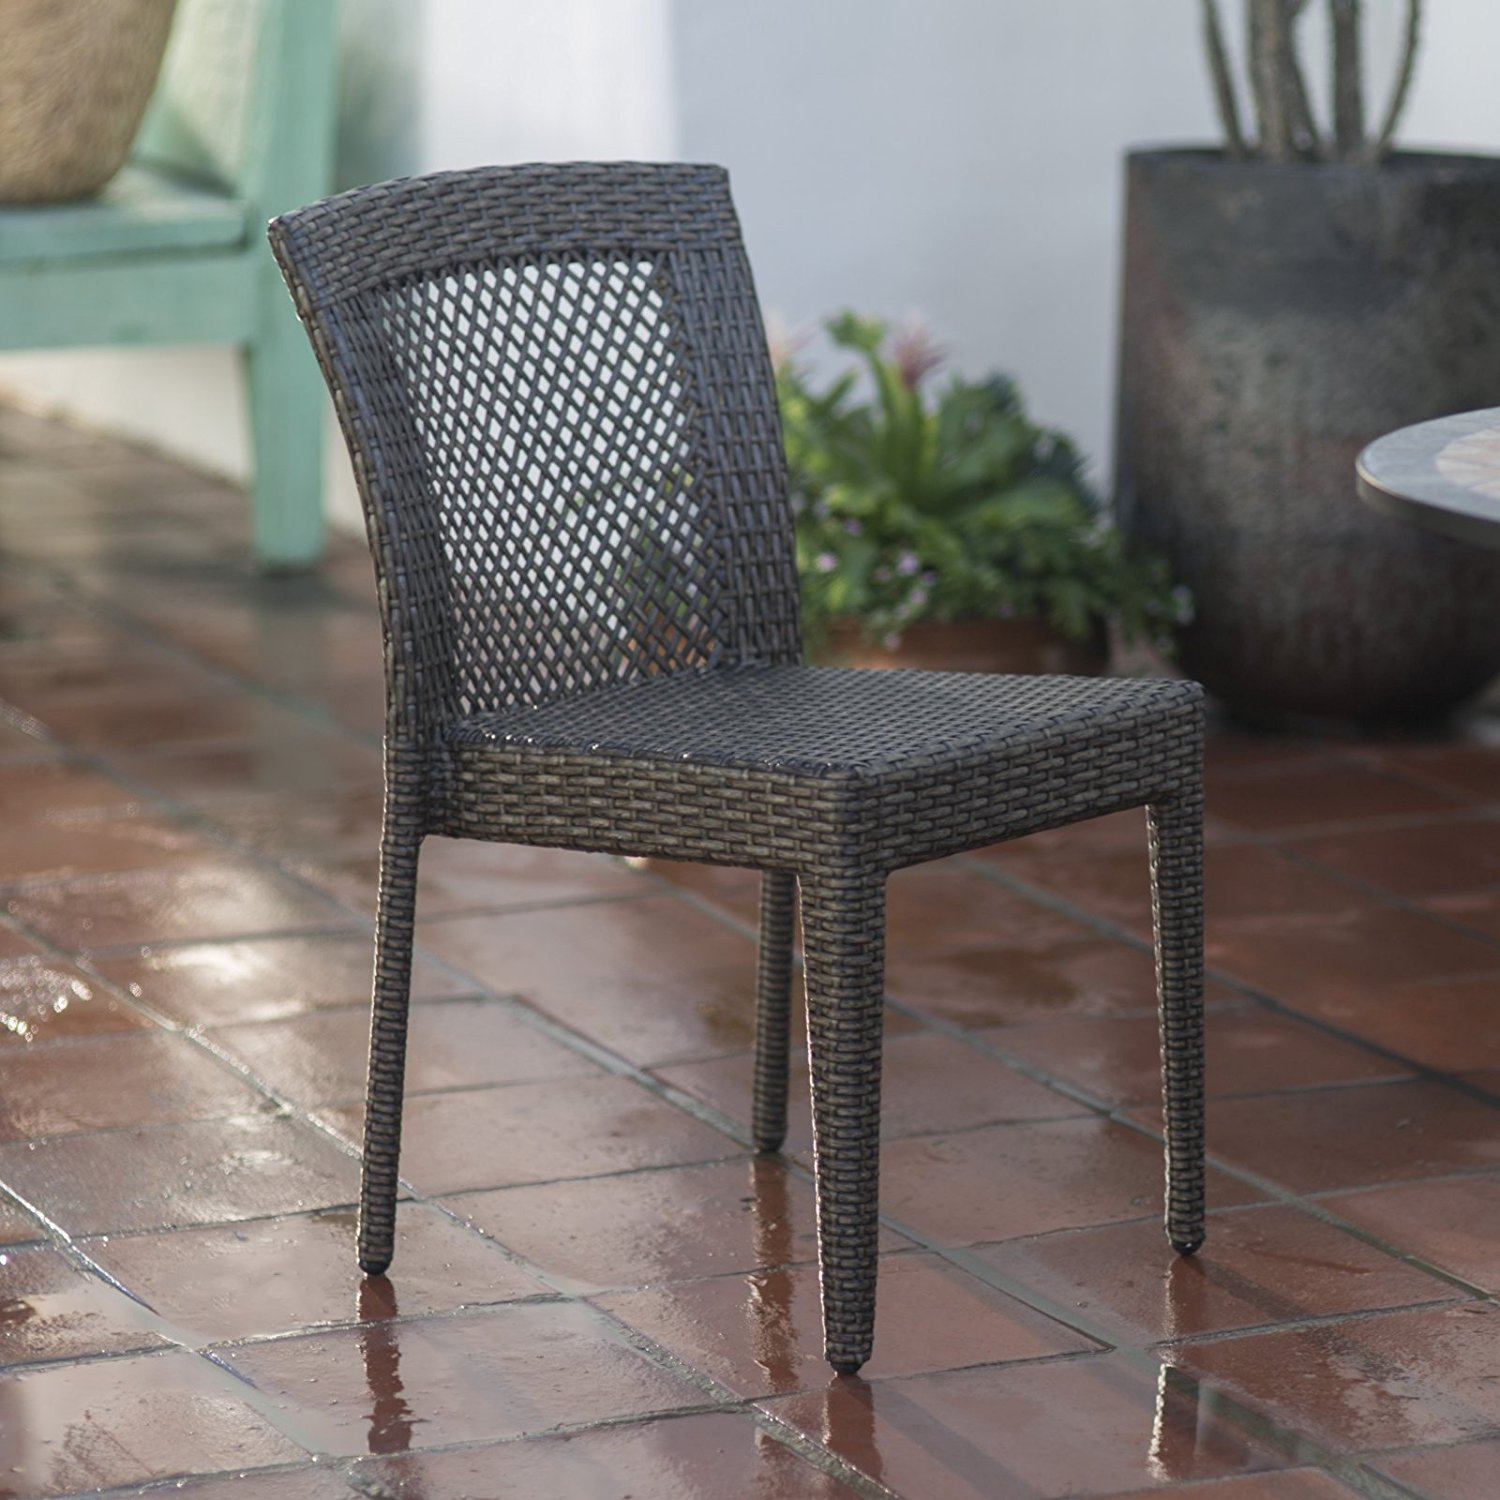 All-Weather Wicker Open Patio Dining Chair, Powder-Coated Aluminum Frame, Durable Resin Wicker in Dark Brown, Convenient Stackable Design, Perfect Addition to Your Patio, Make Yours a Life of Leisure